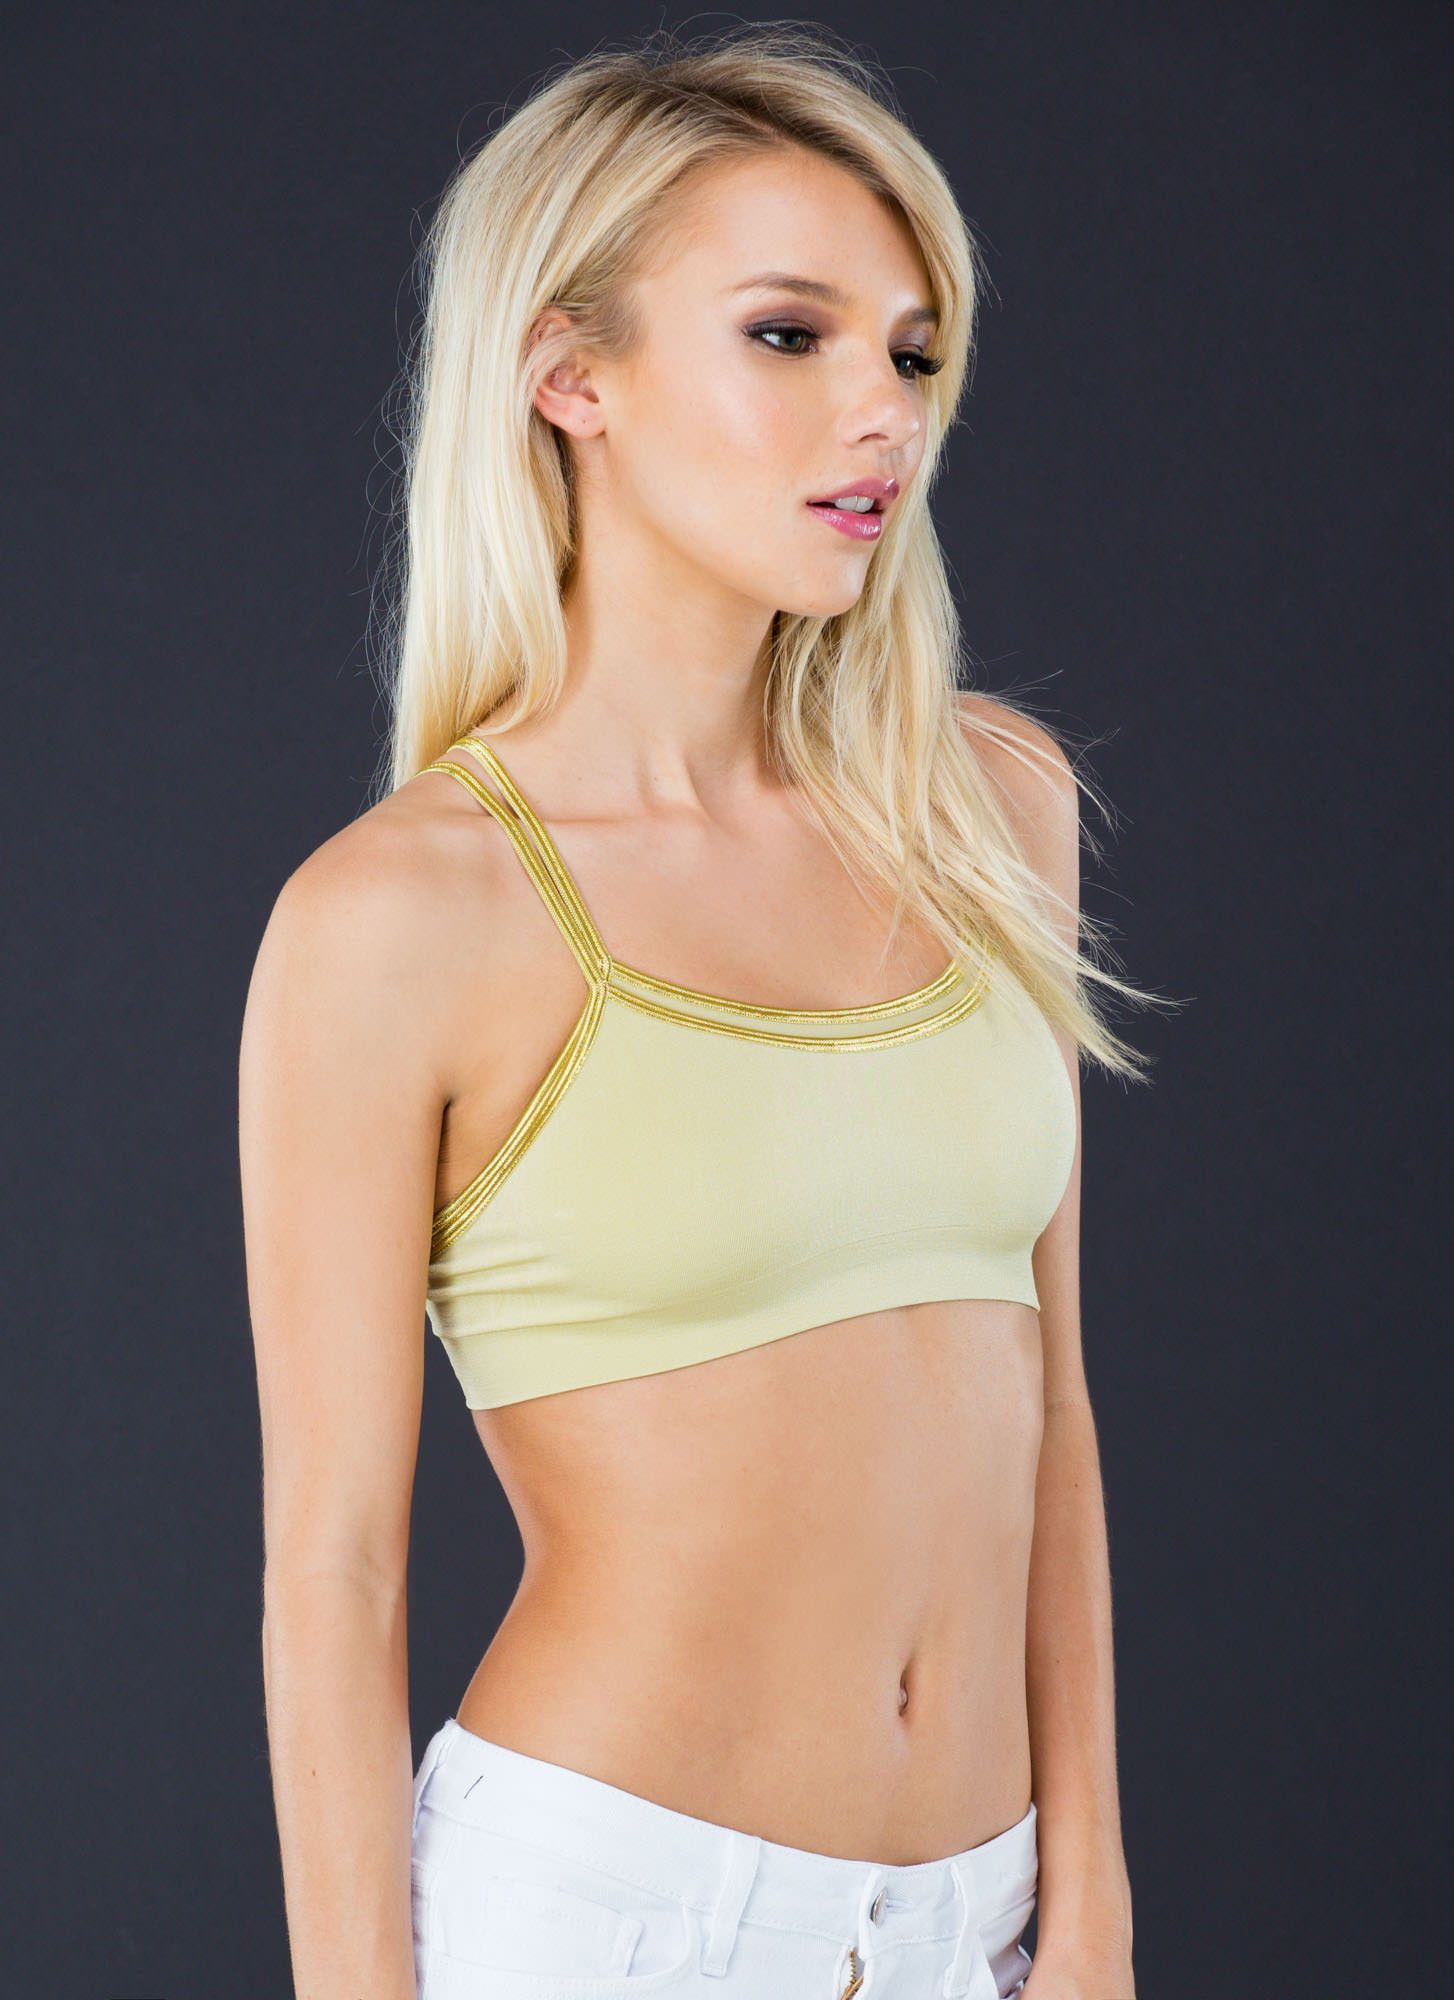 Celebrity Rachel Yampolsky nudes (81 foto and video), Sexy, Sideboobs, Twitter, cameltoe 2019